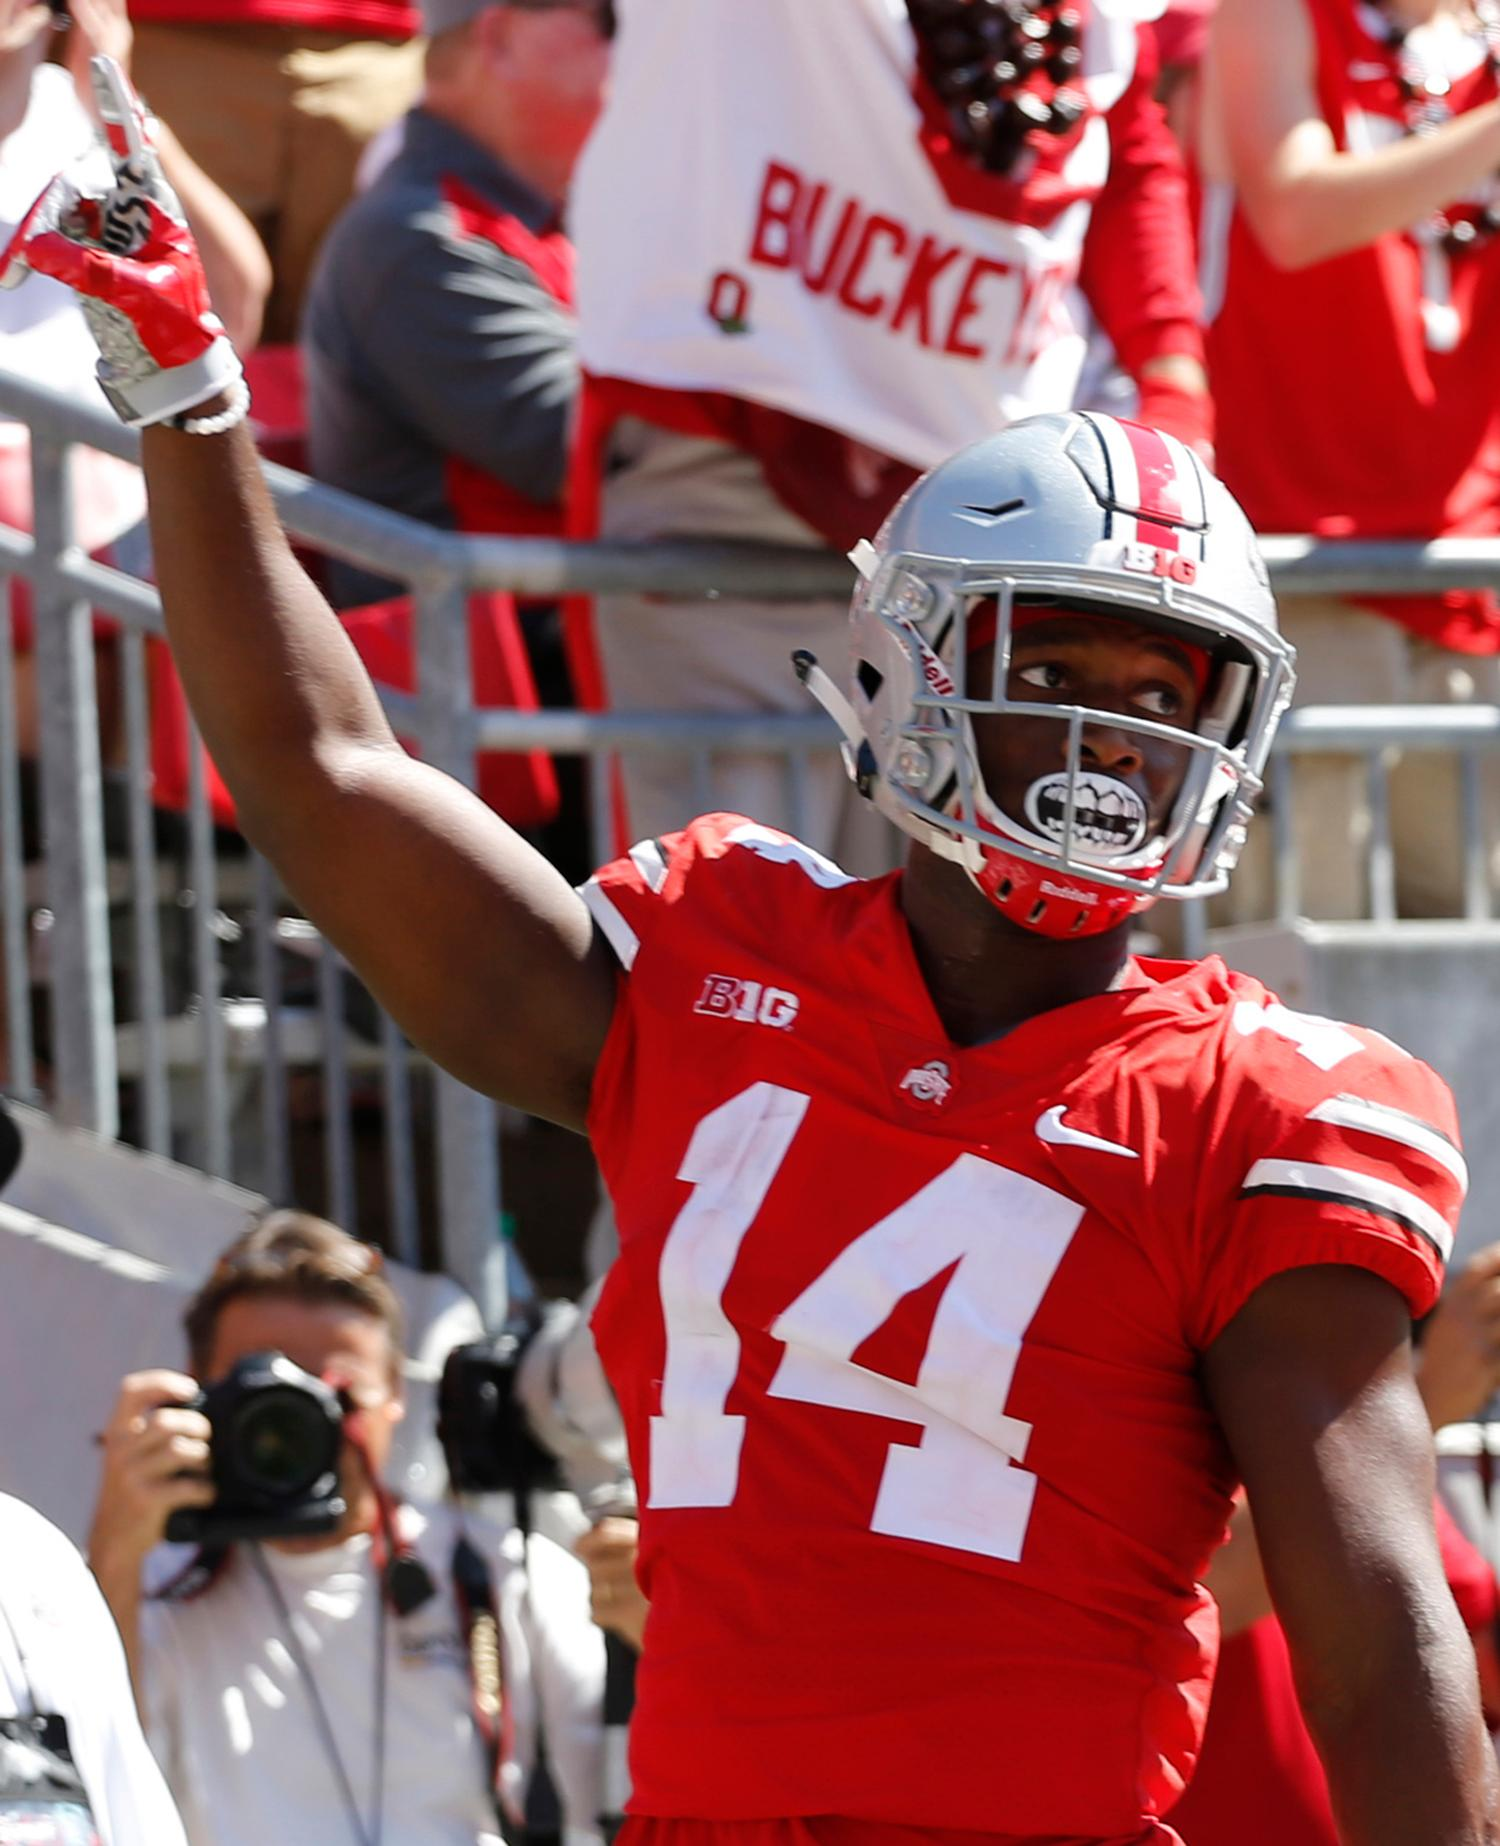 FILE - In this Sept. 23, 2017, file photo, Ohio State receiver K.J. Hill celebrates his touchdown against UNLV during the first half of an NCAA college football game, in Columbus, Ohio. Hill will be back with the Buckeyes next season. (AP Photo/Jay LaPrete, File)